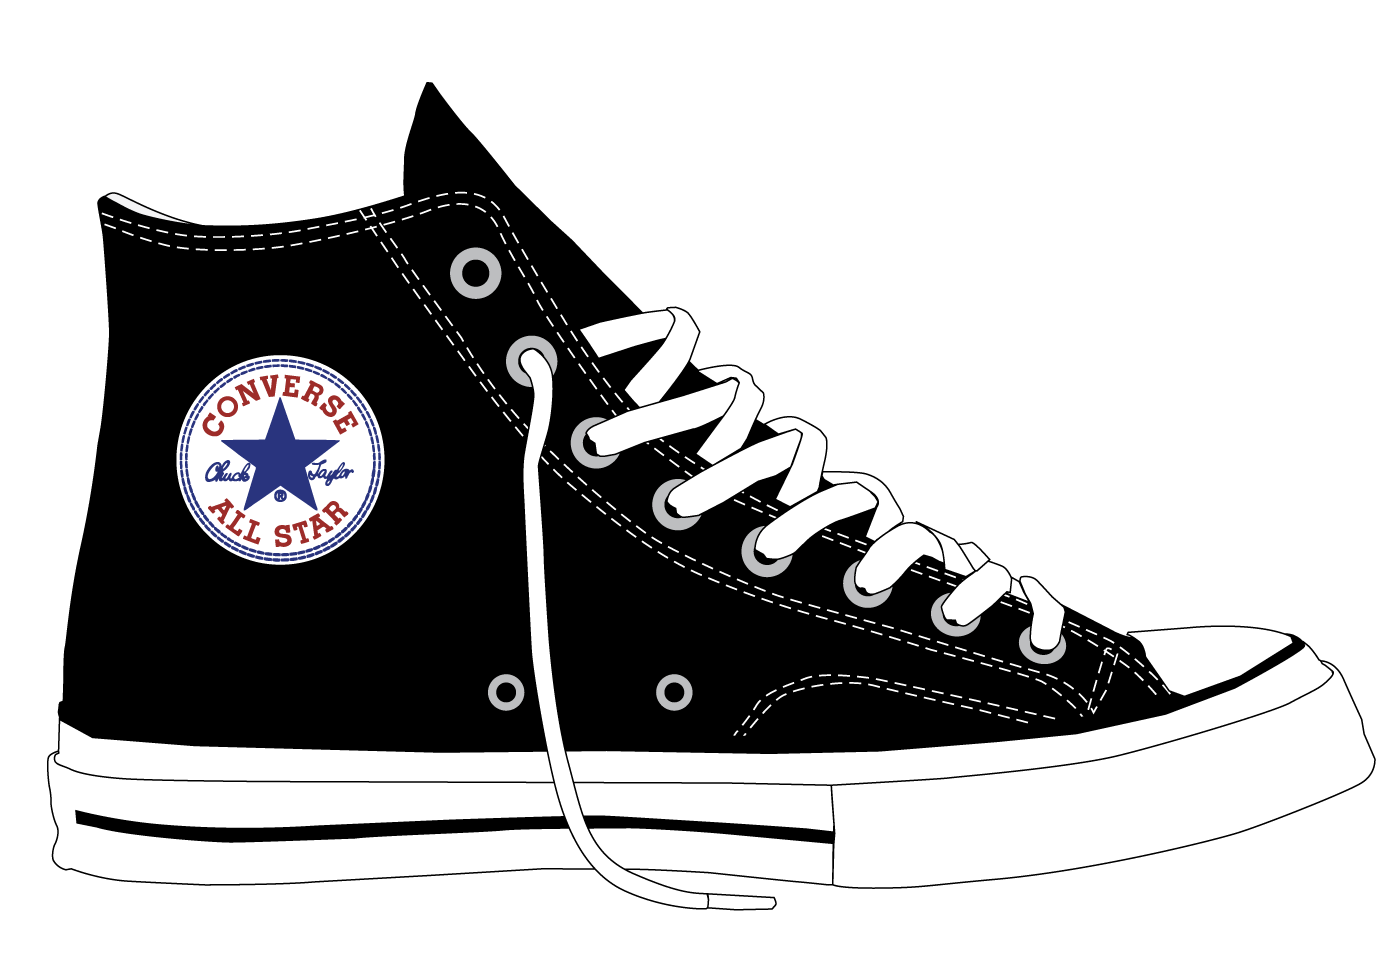 converse shoes free vector art  1001 free downloads tennis shoe clip art borders tennis shoe clip art free